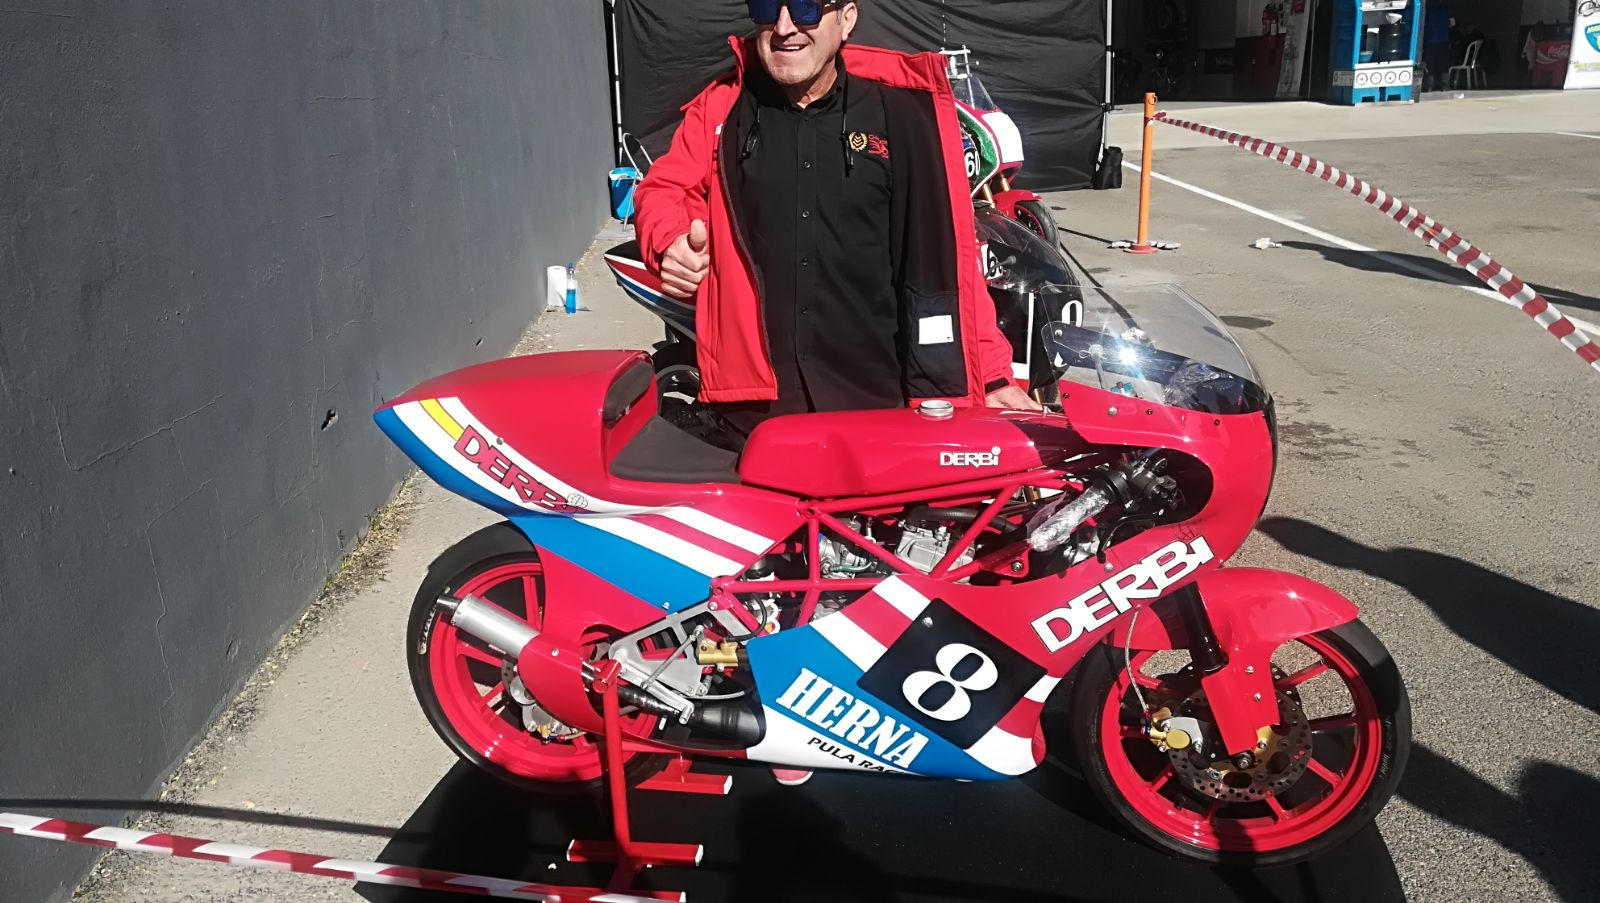 Replica Derbi 125 Moto Herna 23uae4p